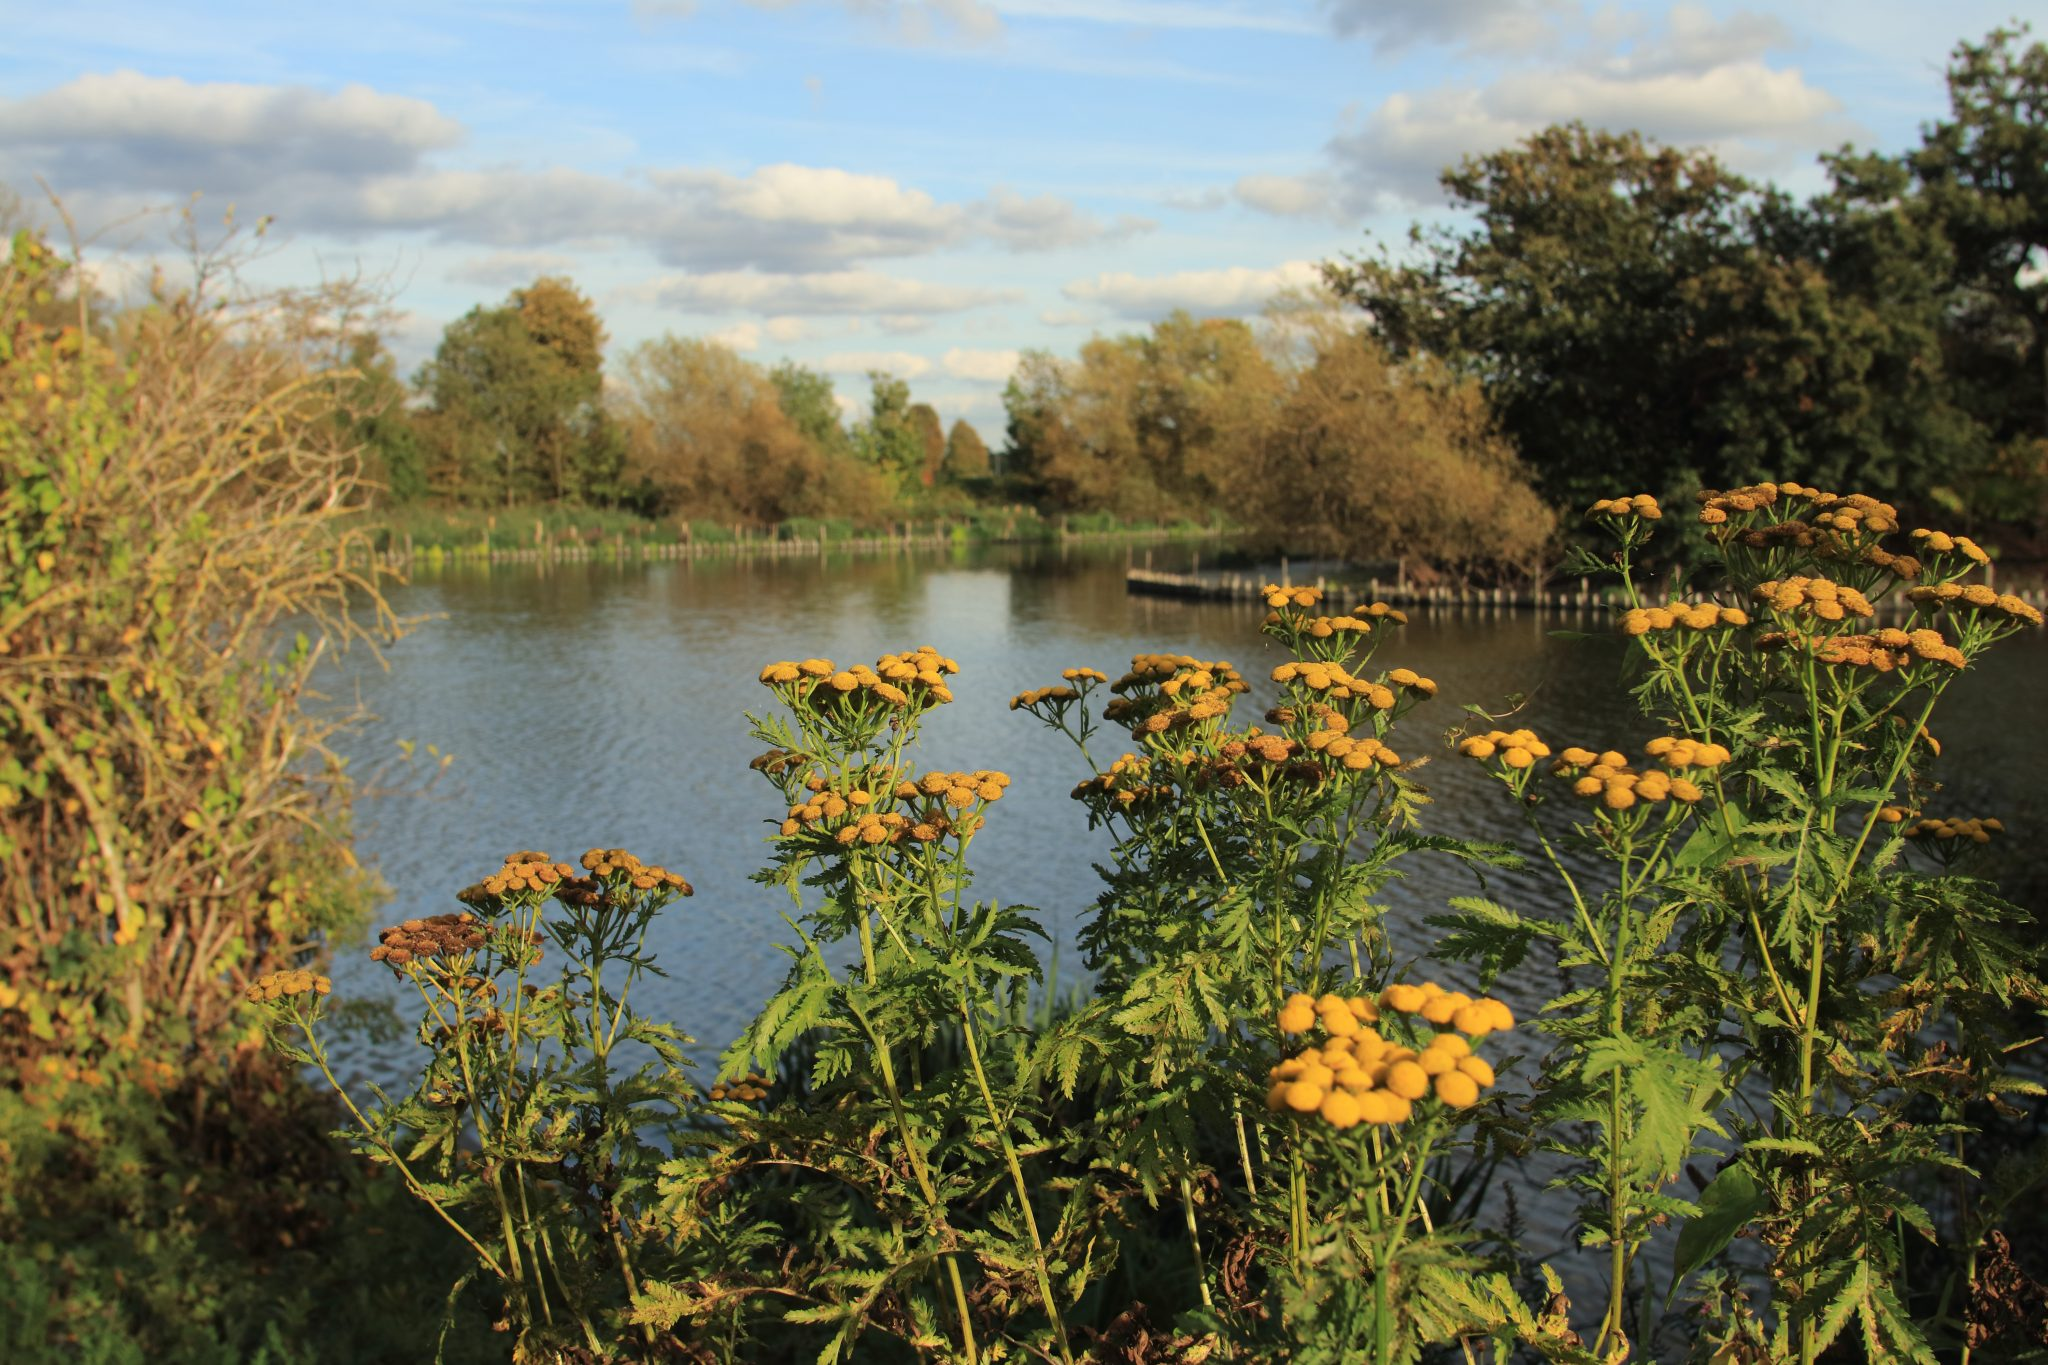 The Larder at Walthamstow Wetlands